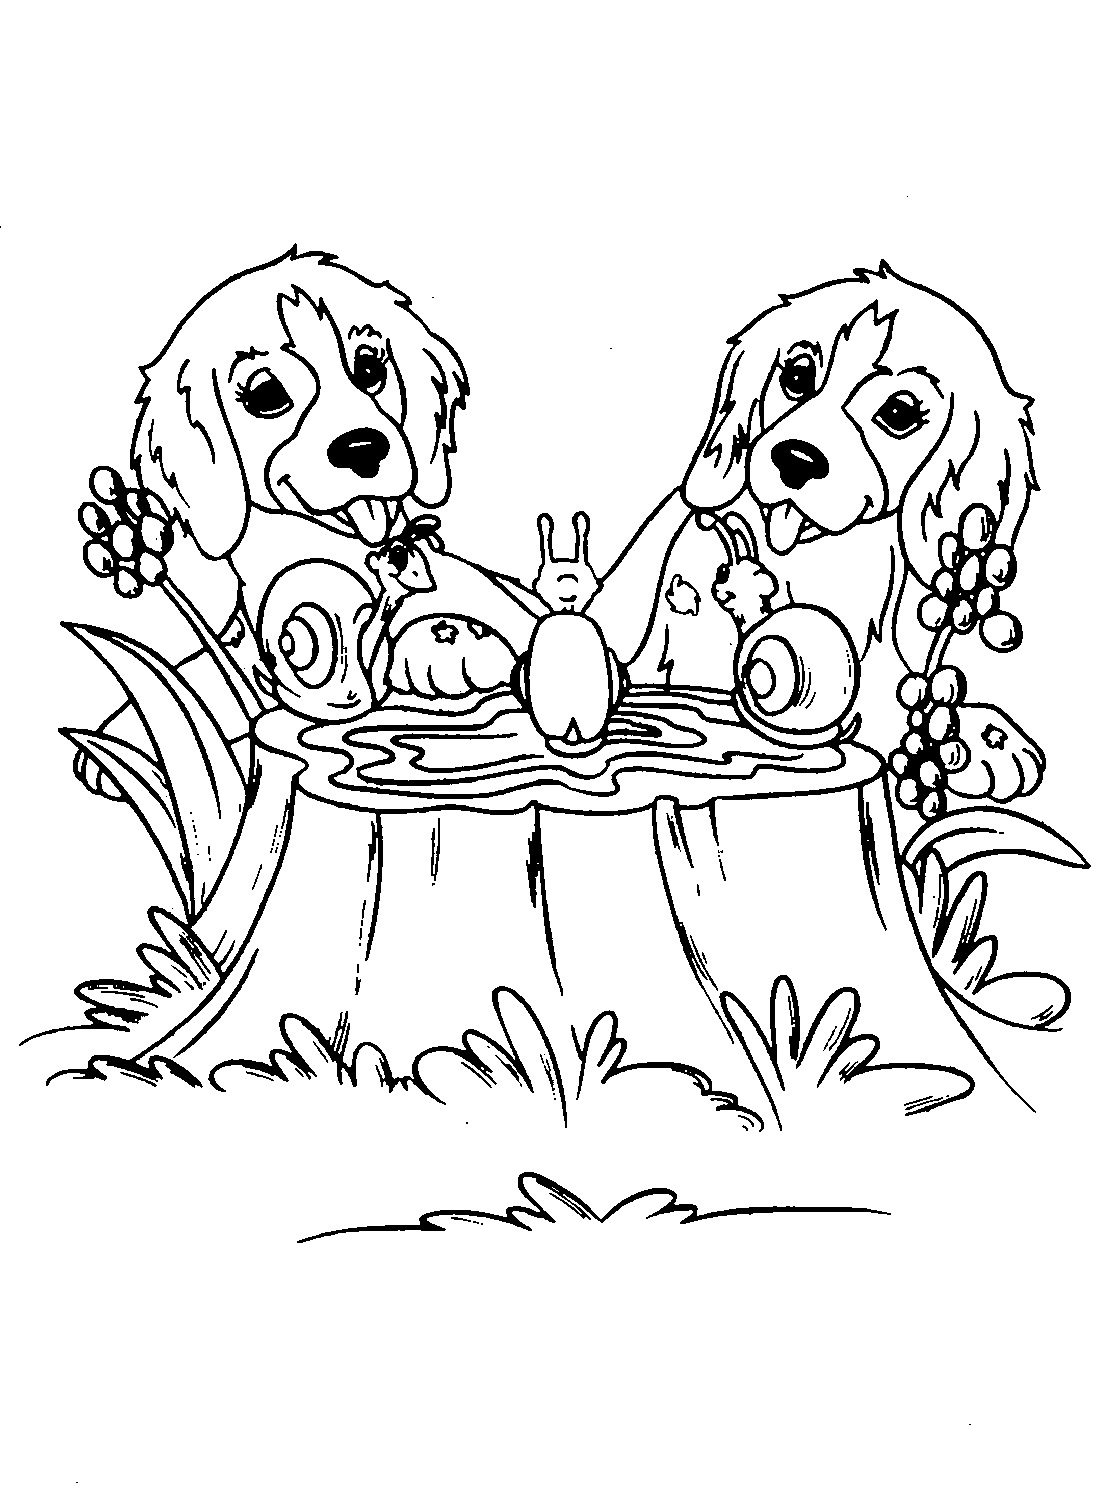 coloring page puppy free printable puppies coloring pages for kids coloring page puppy 1 1